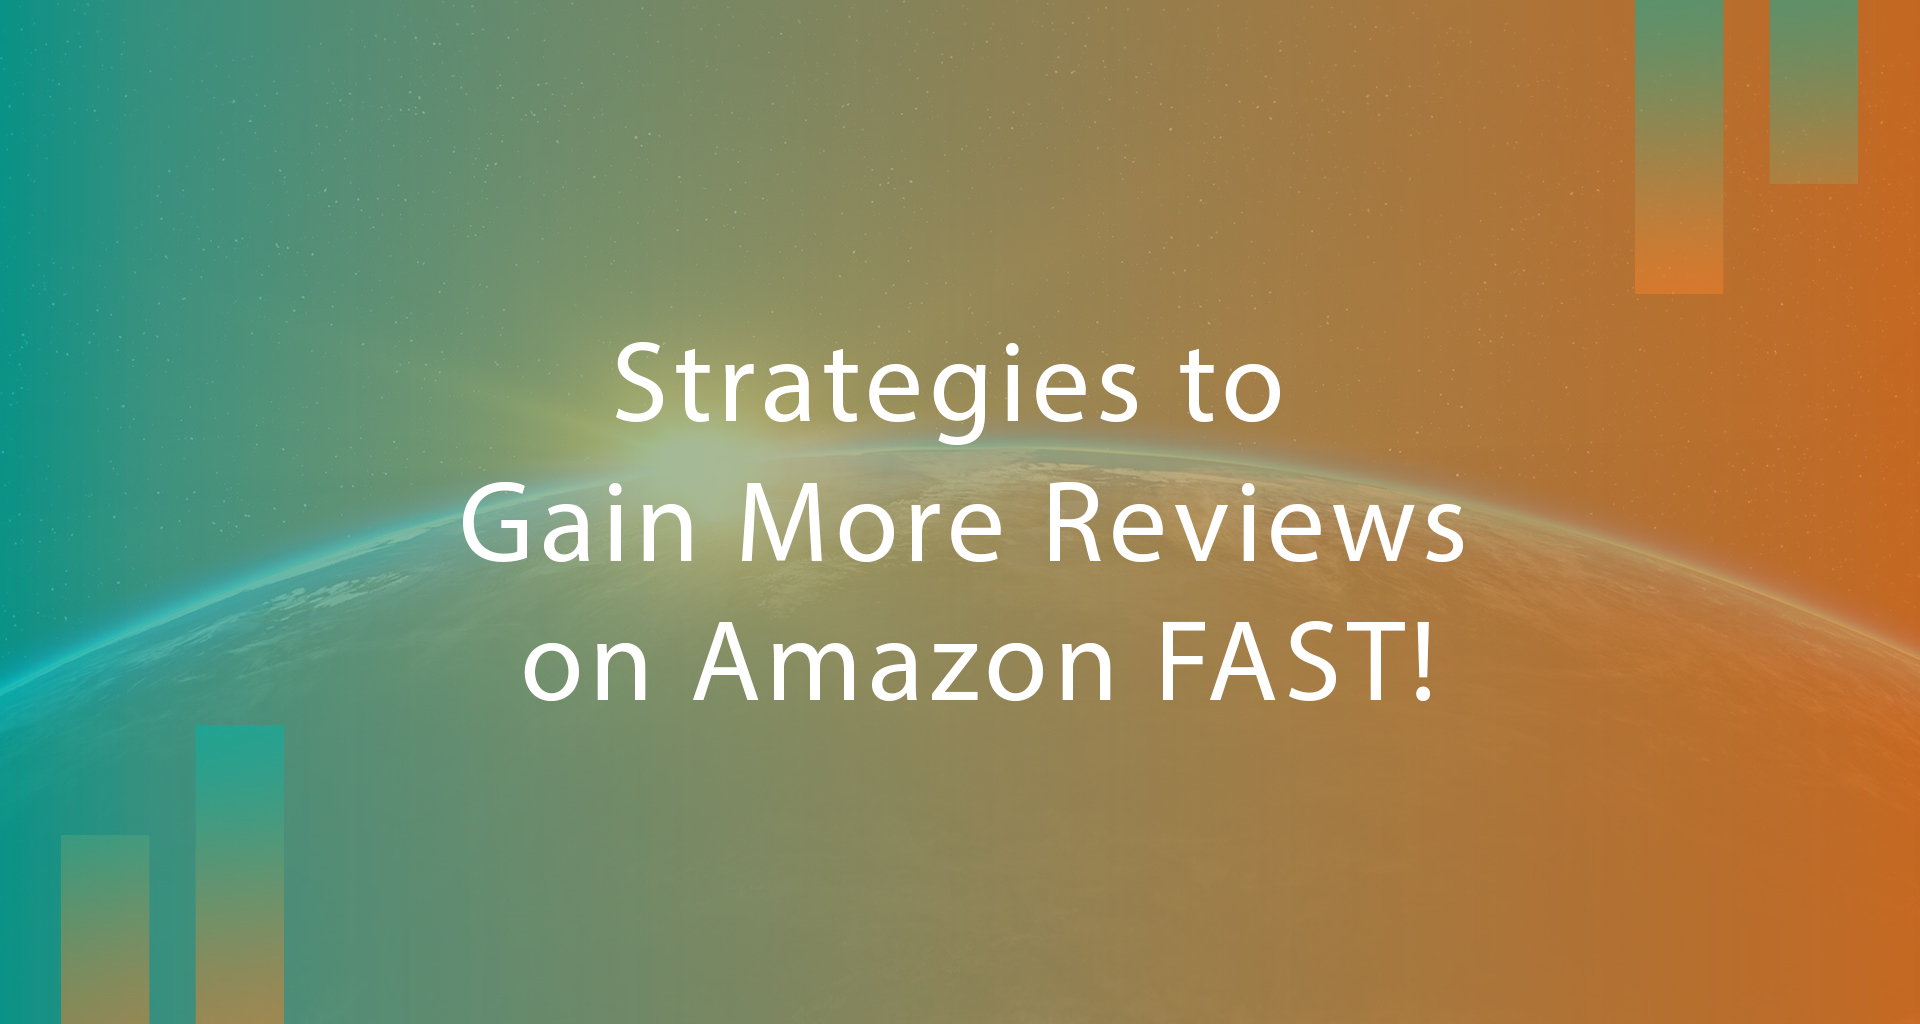 Strategies to Gain More Reviews on Amazon FAST!